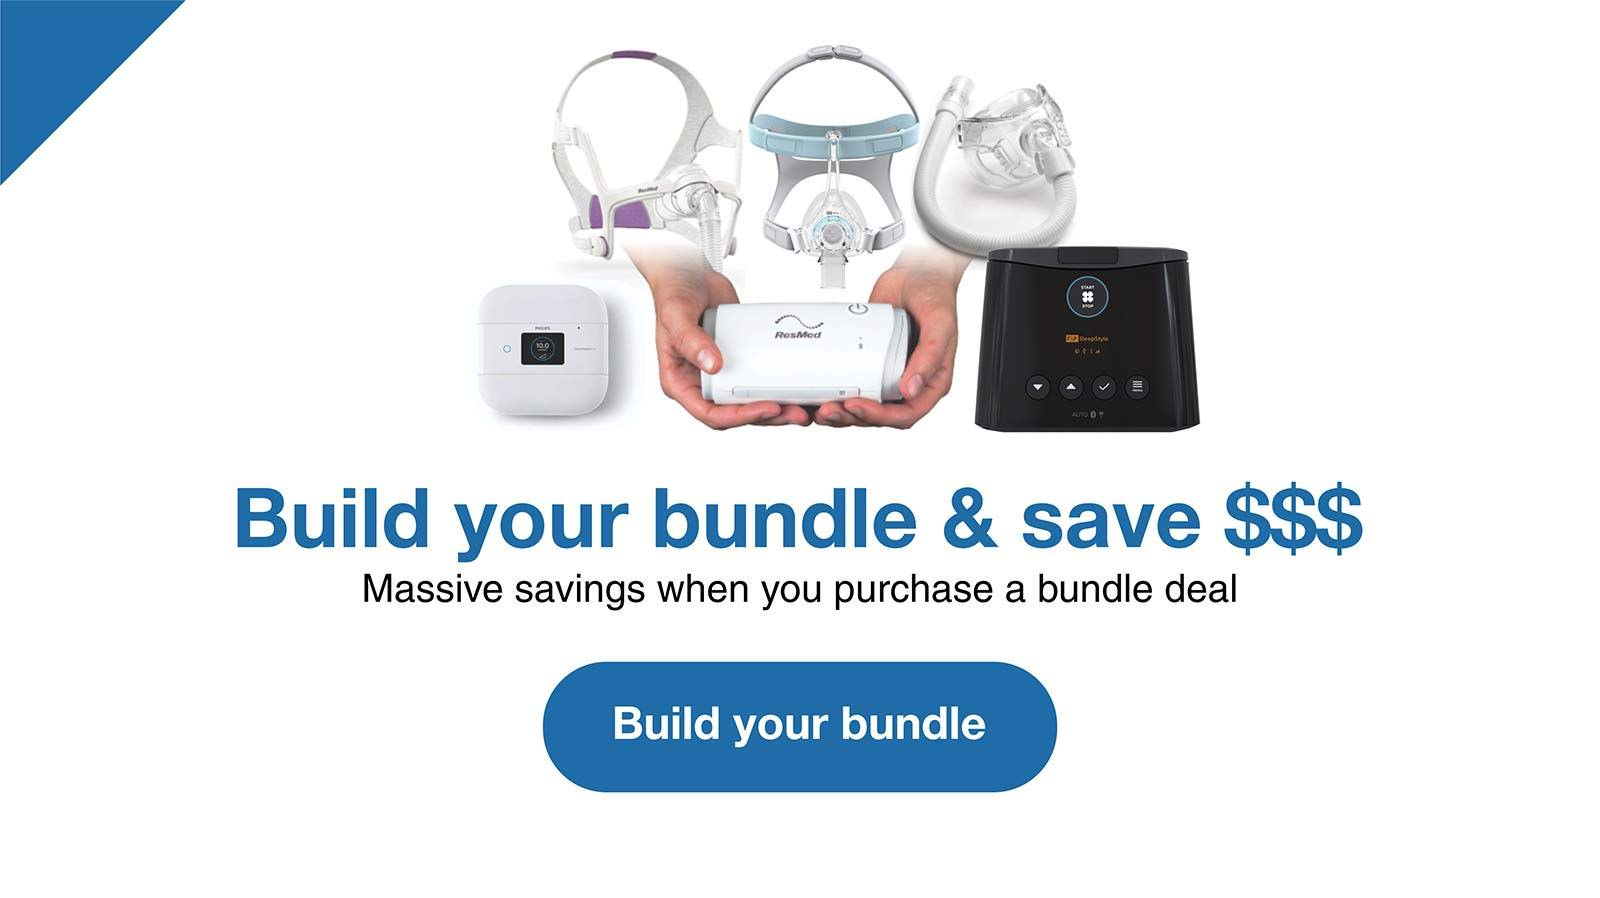 CPAP Machines & Masks - Up to 30% Off at CPAP Direct